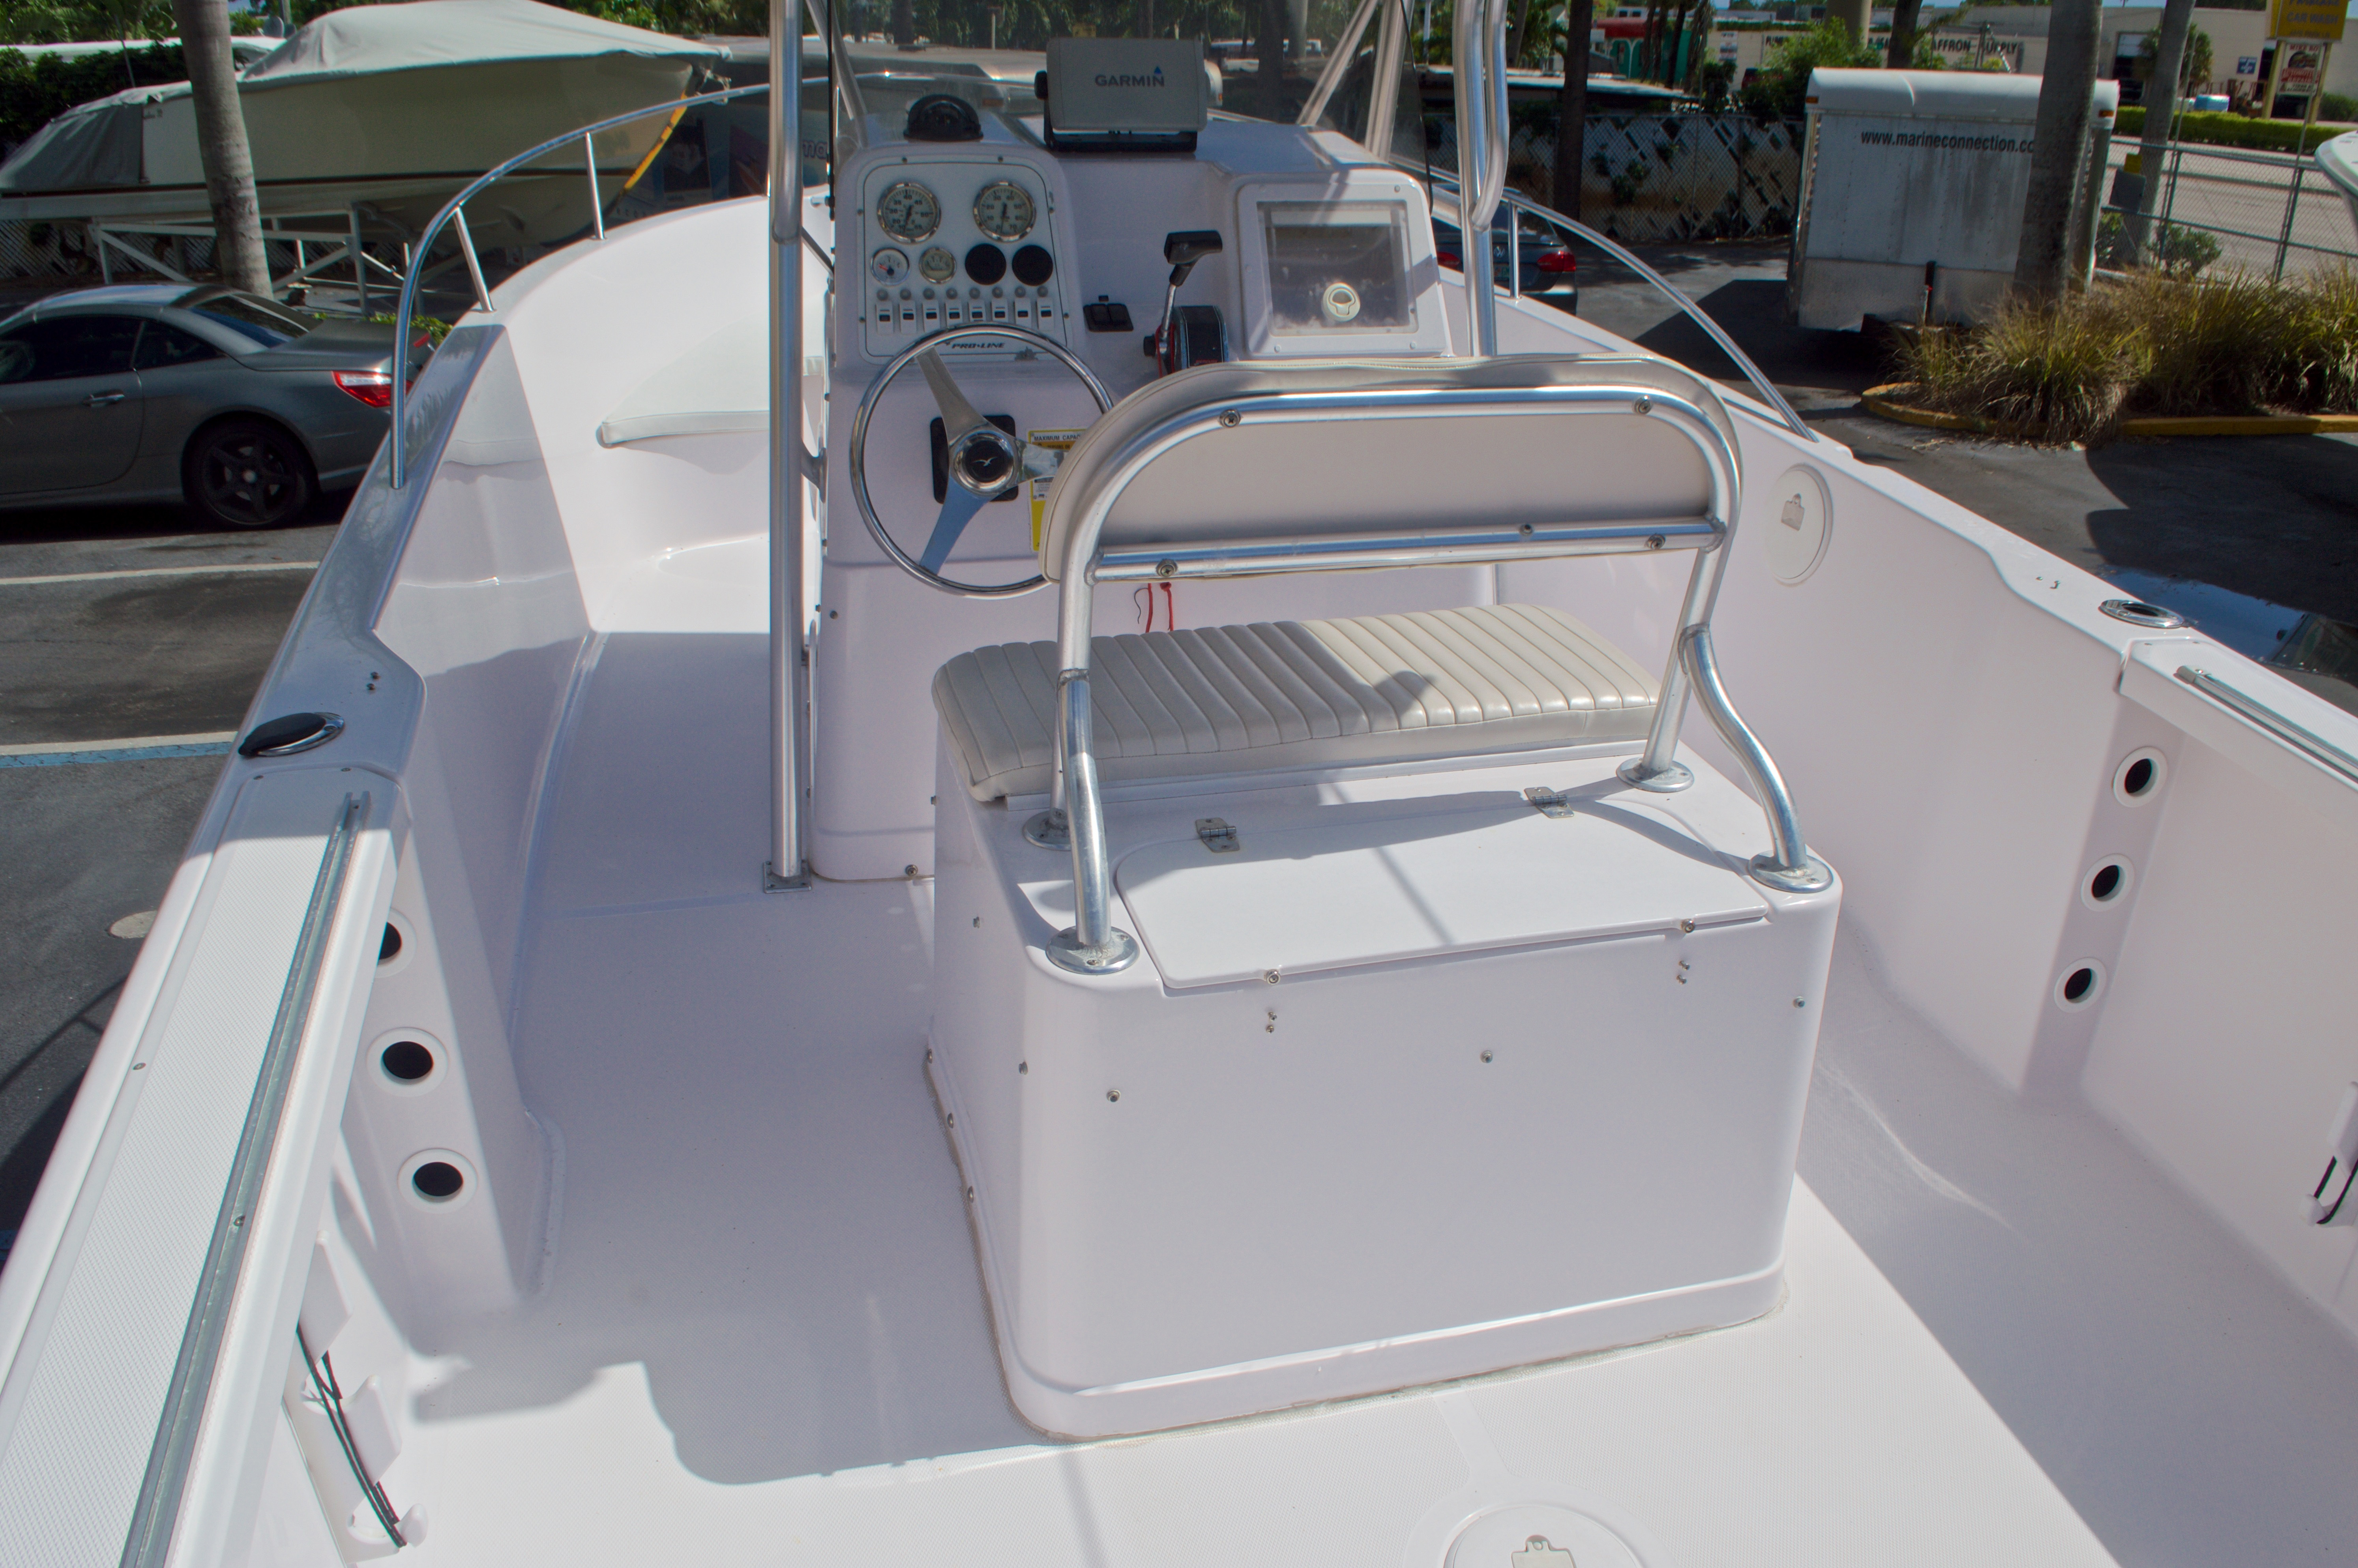 Thumbnail 14 for Used 2002 Pro-Line 22 Sport boat for sale in West Palm Beach, FL